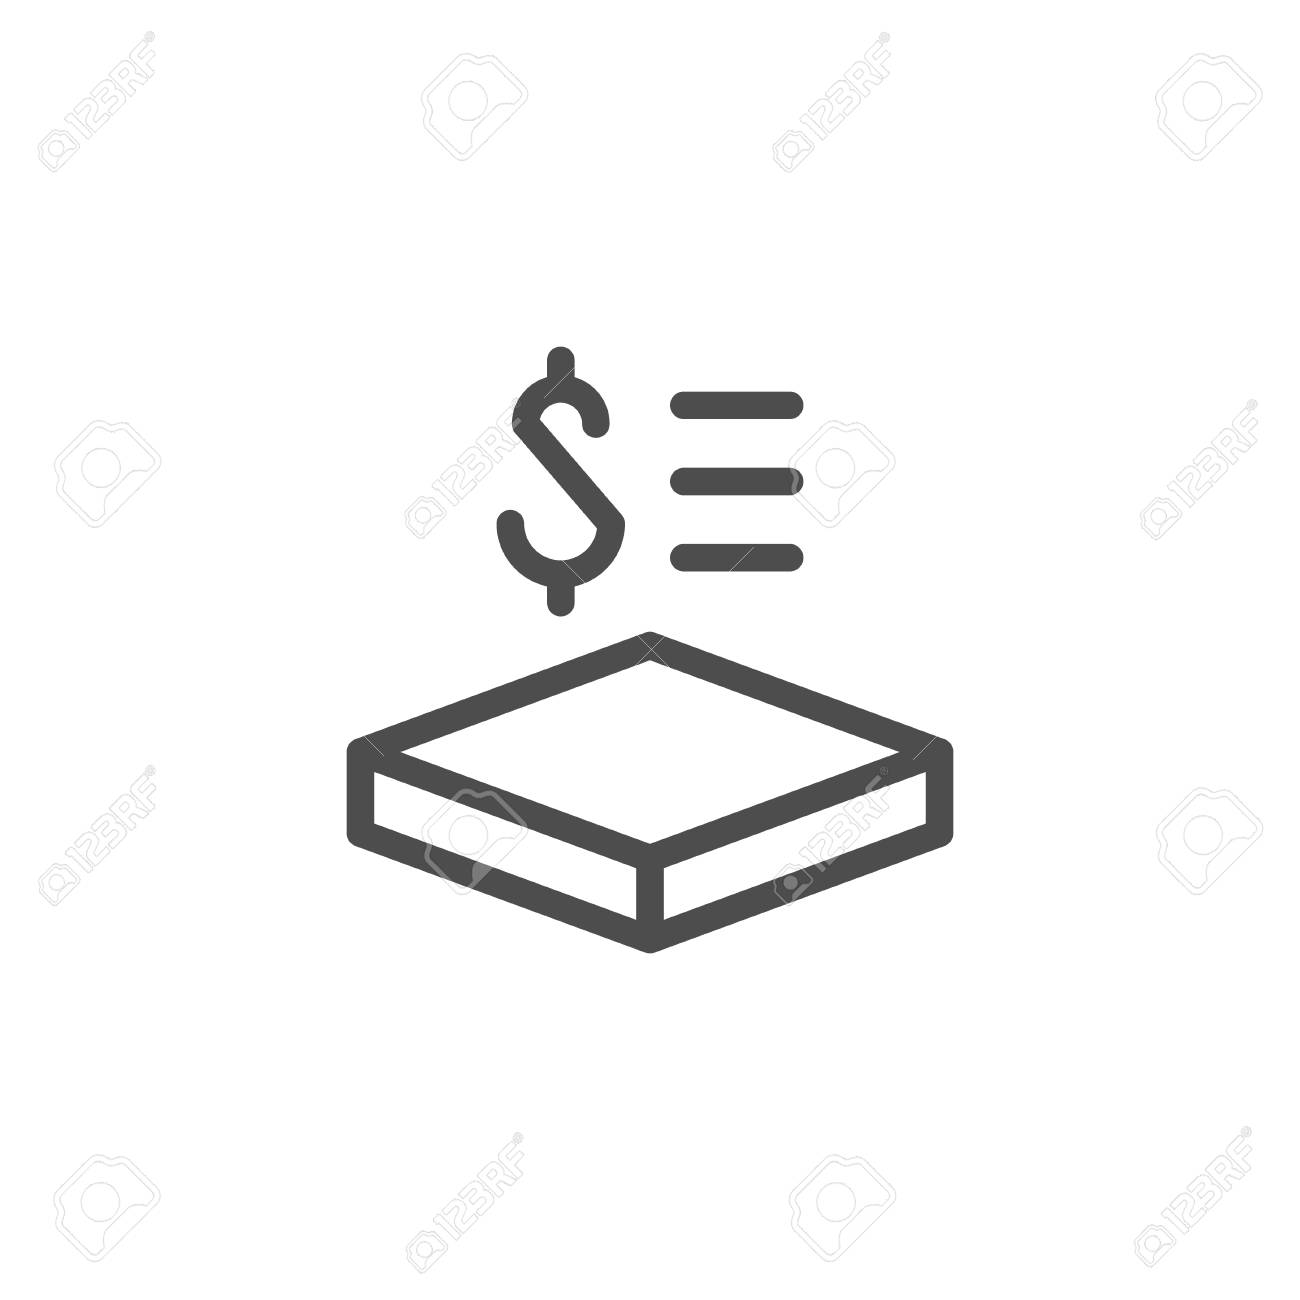 Price per square meter line icon royalty free cliparts vectors price per square meter line icon stock vector 80437467 biocorpaavc